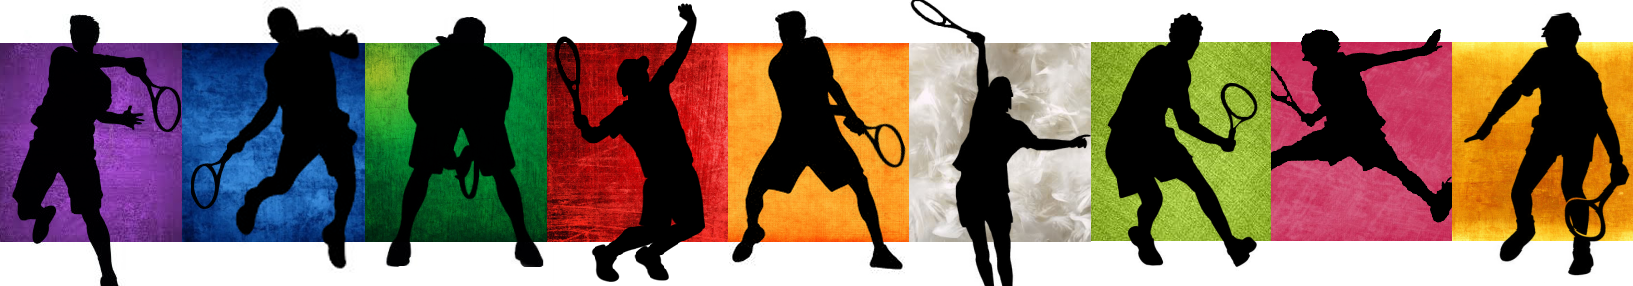 prince_of_tennis___seigaku_team_banner_by_swisskun-d7s0v4l